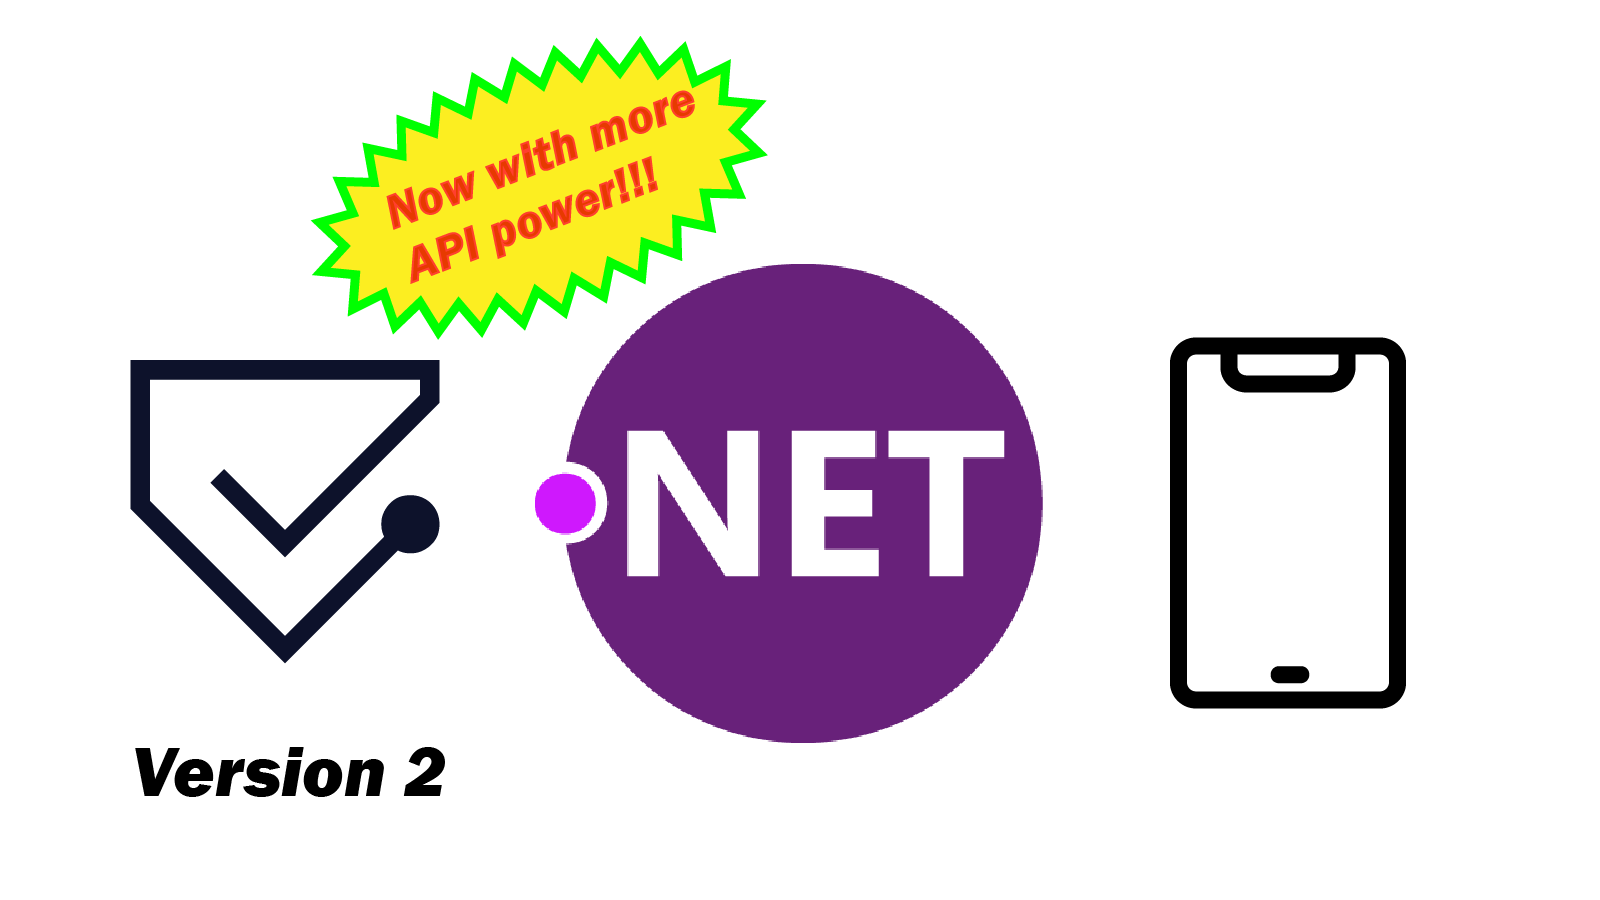 JSFeeds - Verifying Phone Number Ownership in ASP NET Core Identity